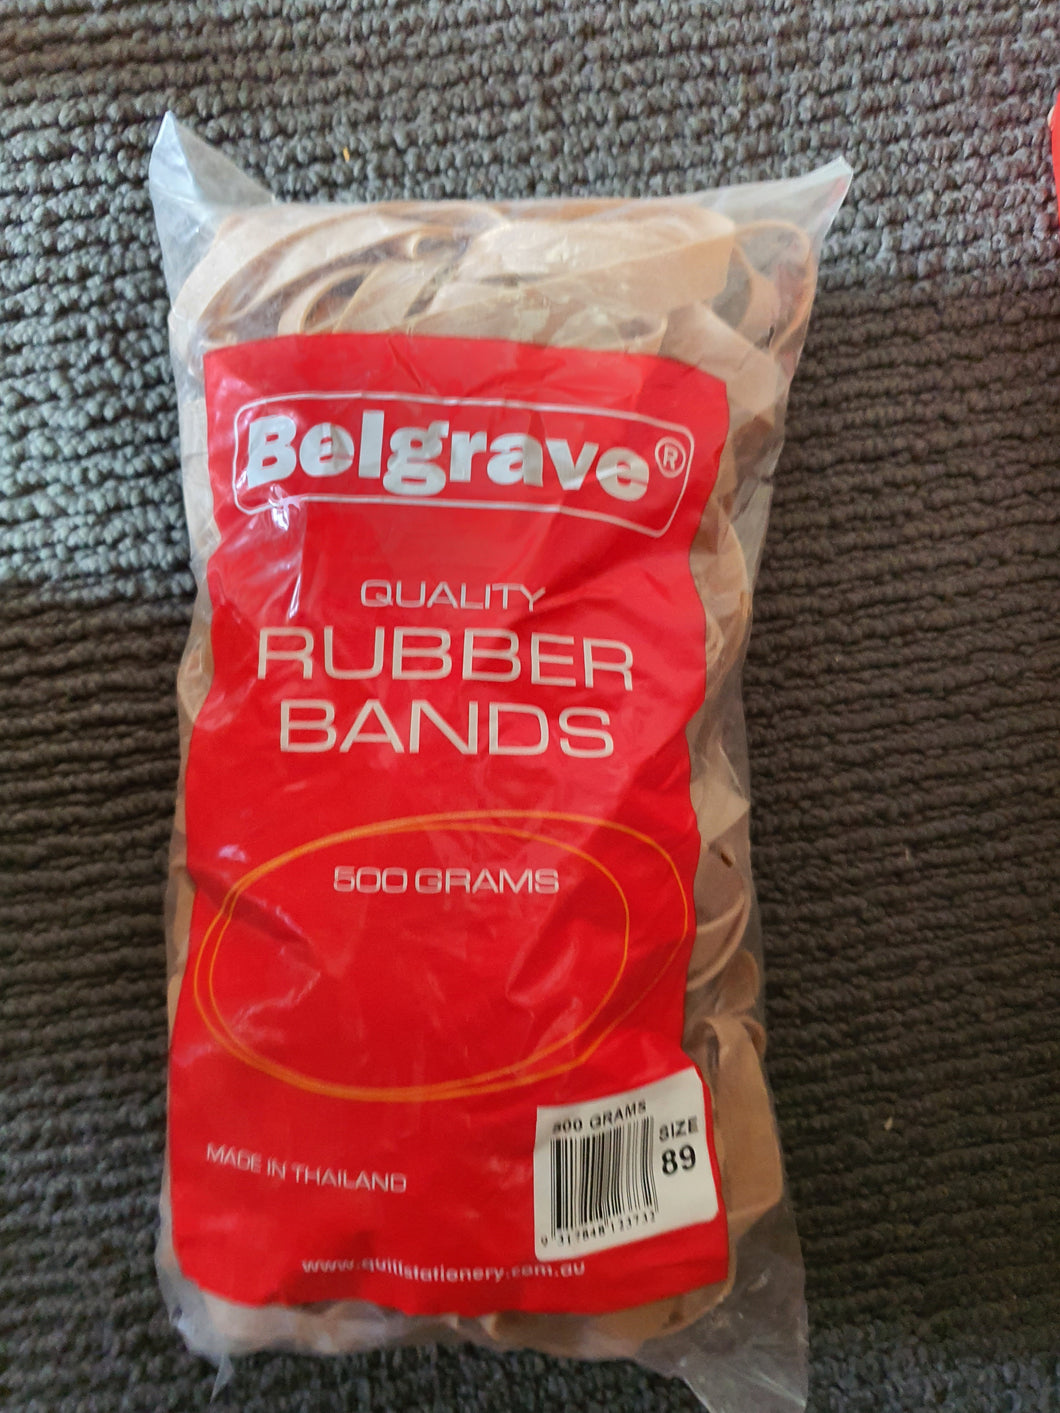 Belgrave size 89 Rubber Bands 500 grams